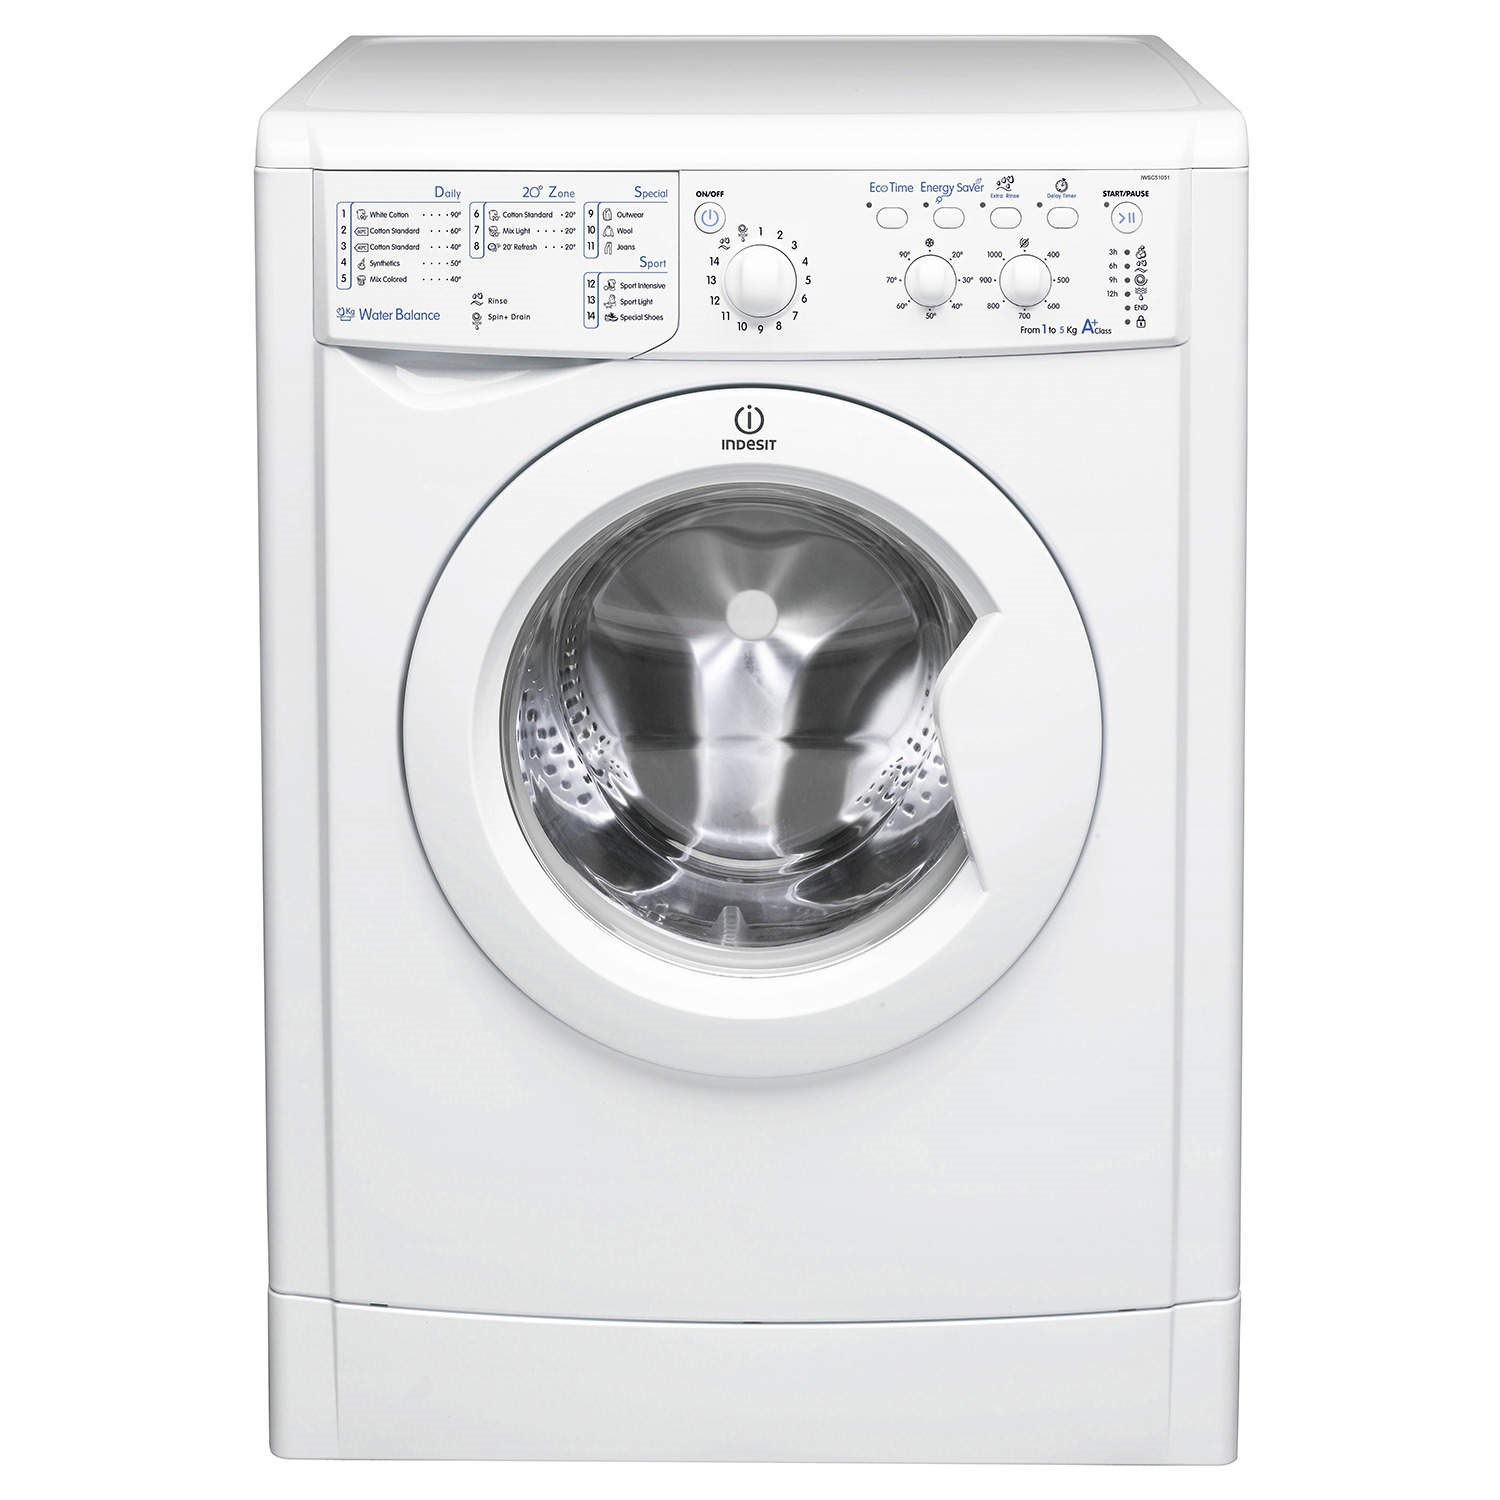 westpoint washing machine reviews